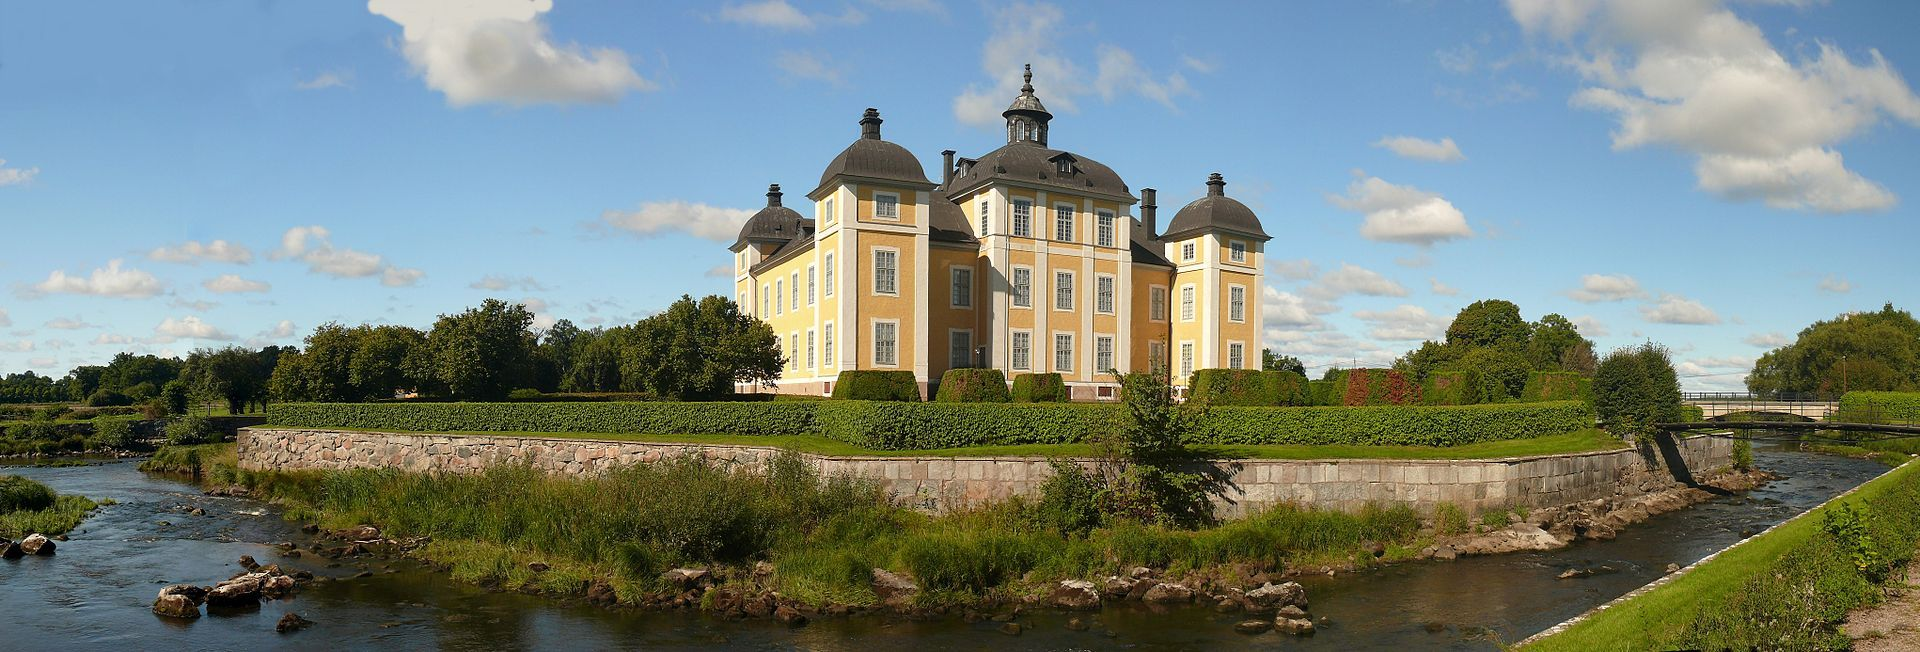 Strömsholm Palace, sometimes called Strömsholm Castle (Swedish: Strömsholms slott), is a Swedish royal palace. The baroque palace is built on the site of a fortress from the 1550s, located on an island in the Kolbäcksån river at the west end of Lake Mälaren. The palace has interiors from the 18th century and an important collection of Swedish paintings.